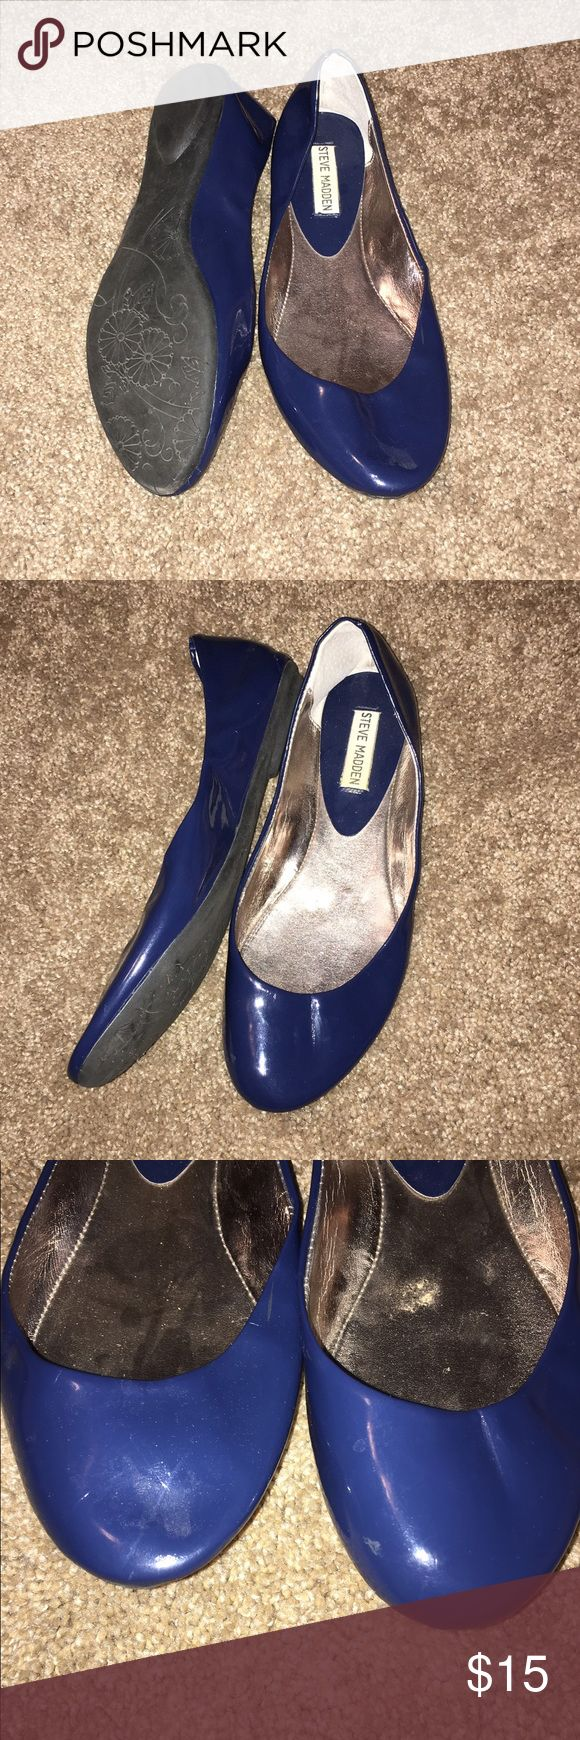 Steve Madden Navy Ballet Flats Good condition! Only worn a few times and are a little smashed from being in my closet for so long. Size 10 Steve Madden Shoes Flats & Loafers